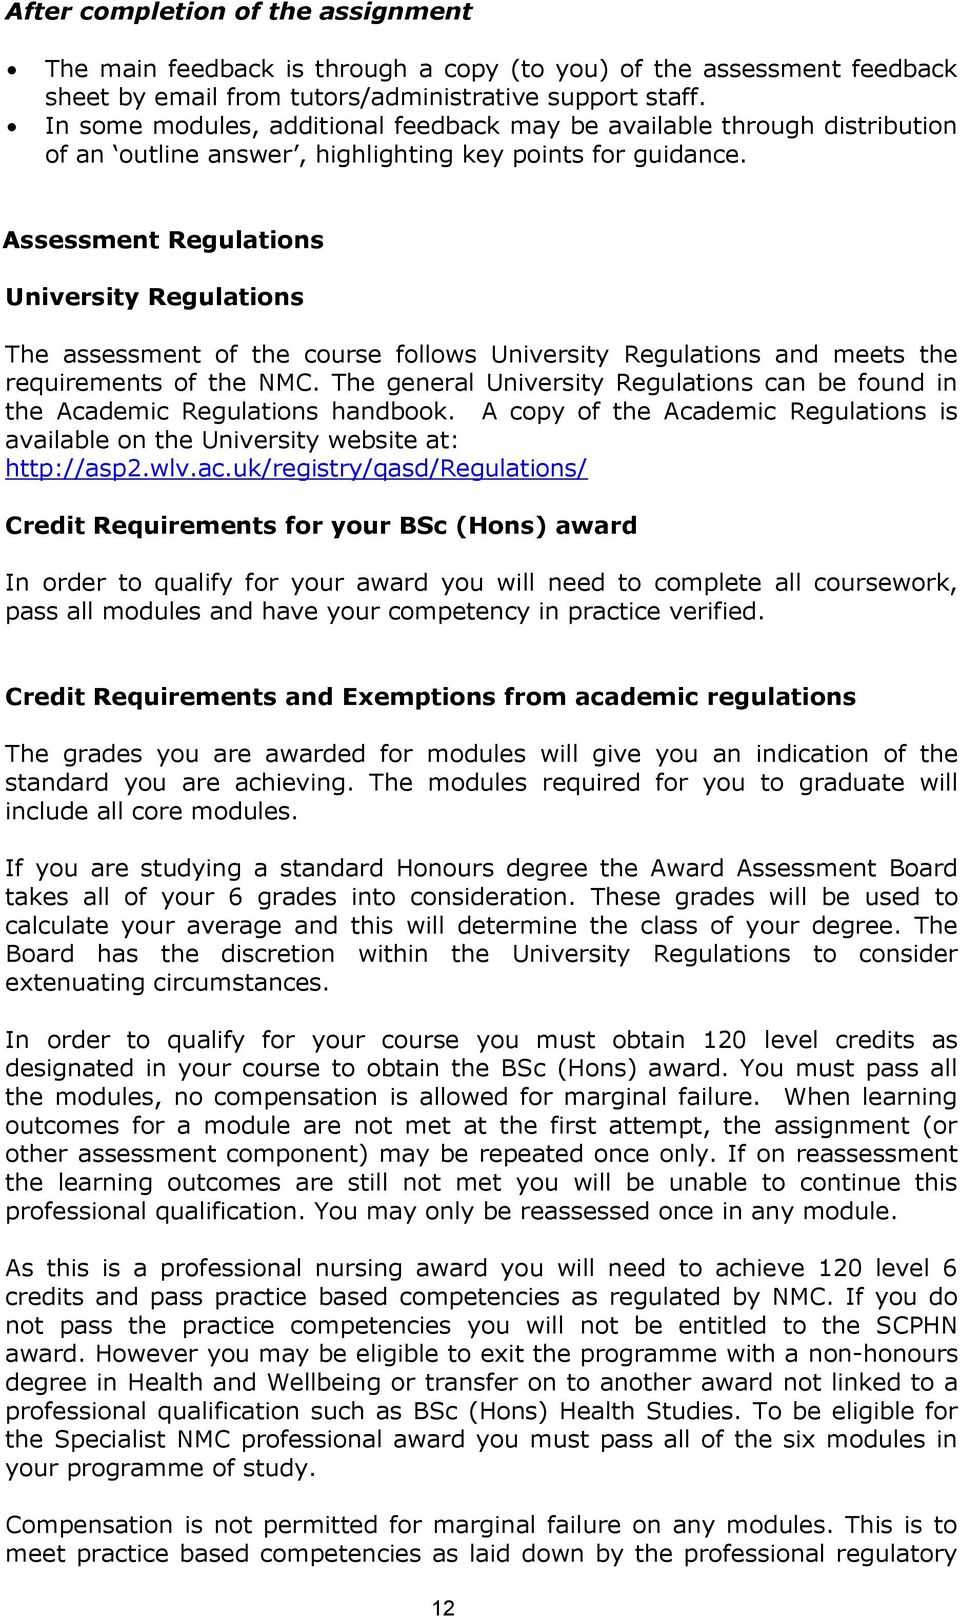 Assessment Regulations University Regulations The assessment of the course follows University Regulations and meets the requirements of the NMC.